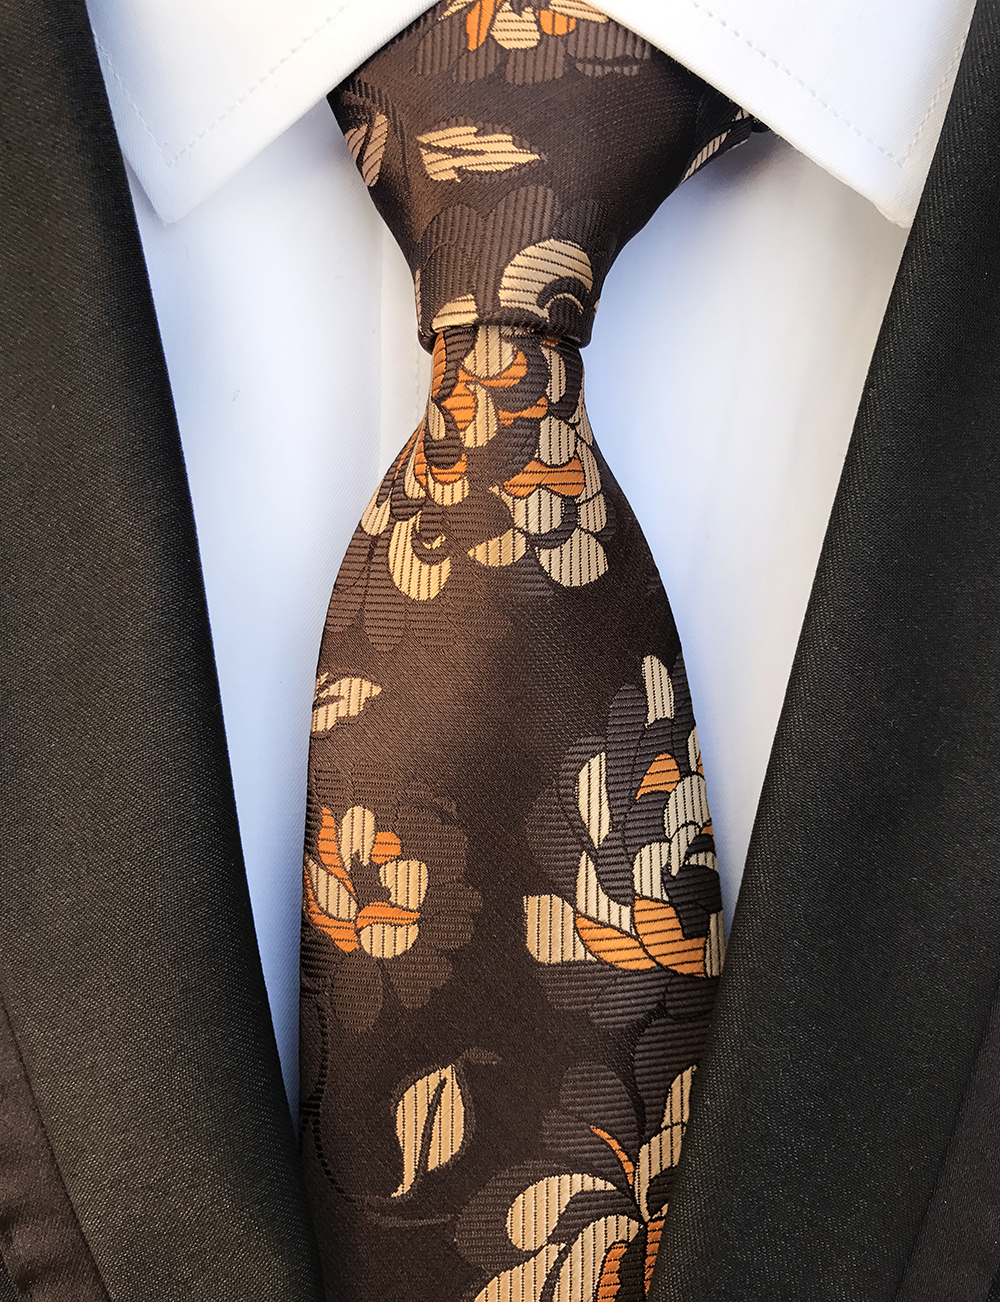 New Design Paisley Brown Orange Jacquard Woven Silk Ties Mens Neck Tie 8CM Ties For Men Wedding Suit Business Party Gravatas